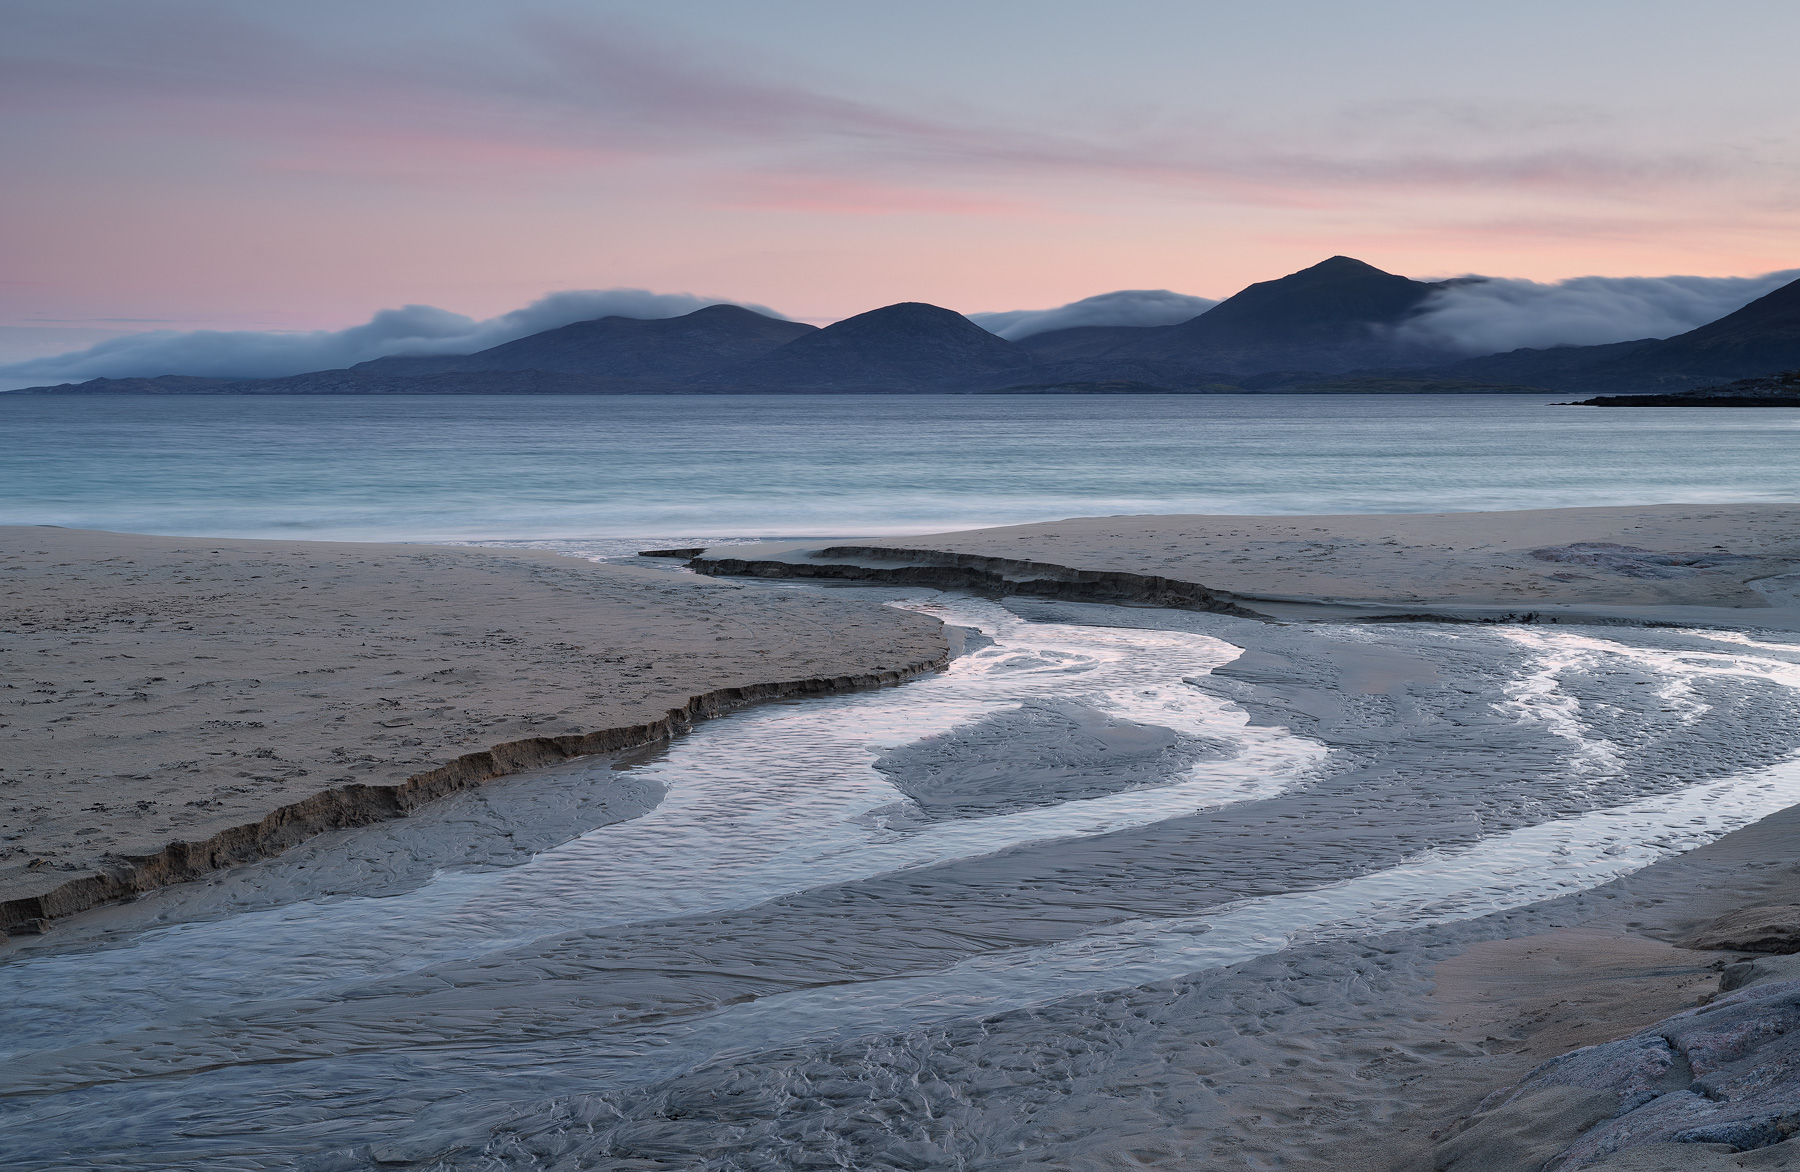 A meandering peat stream cuts through the dunes and carves a fresh path through soft sand on its way to the beach at Traigh Rosamol on Harris